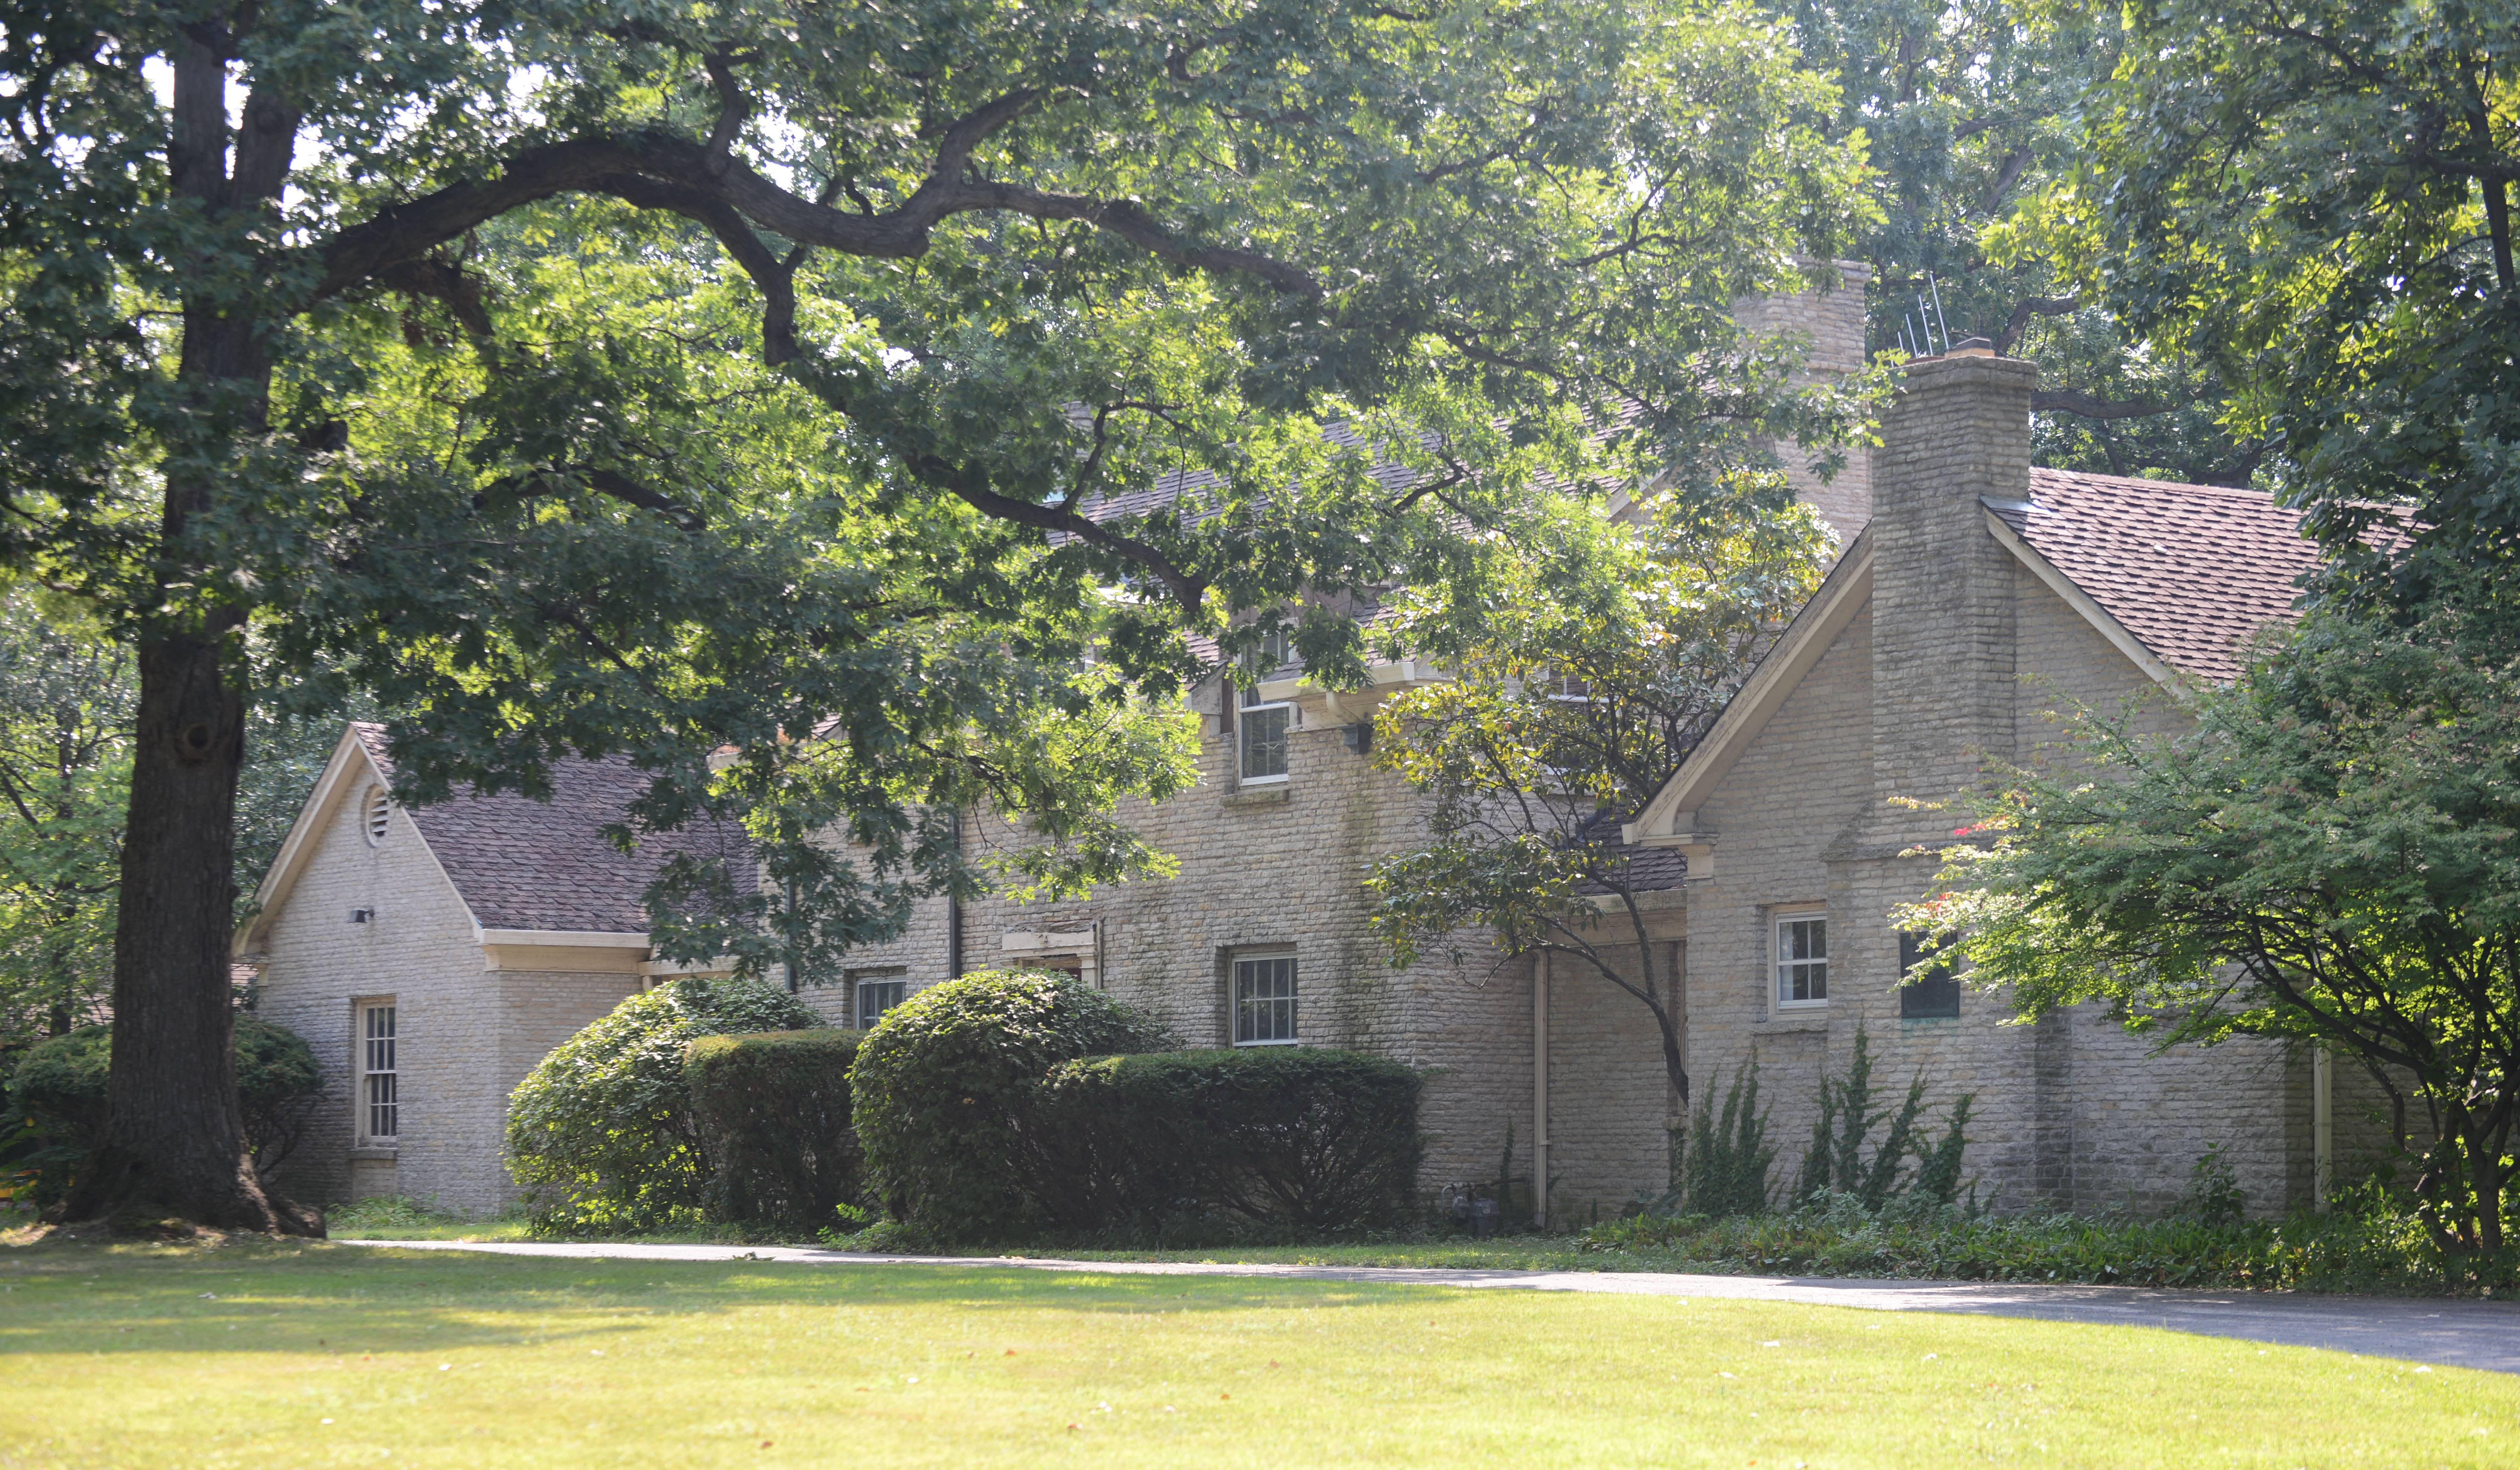 A preservation group is asking the DuPage County Forest Preserve District to fix the roof at the McKee House in Churchill Woods Forest Preserve near Glen Ellyn.